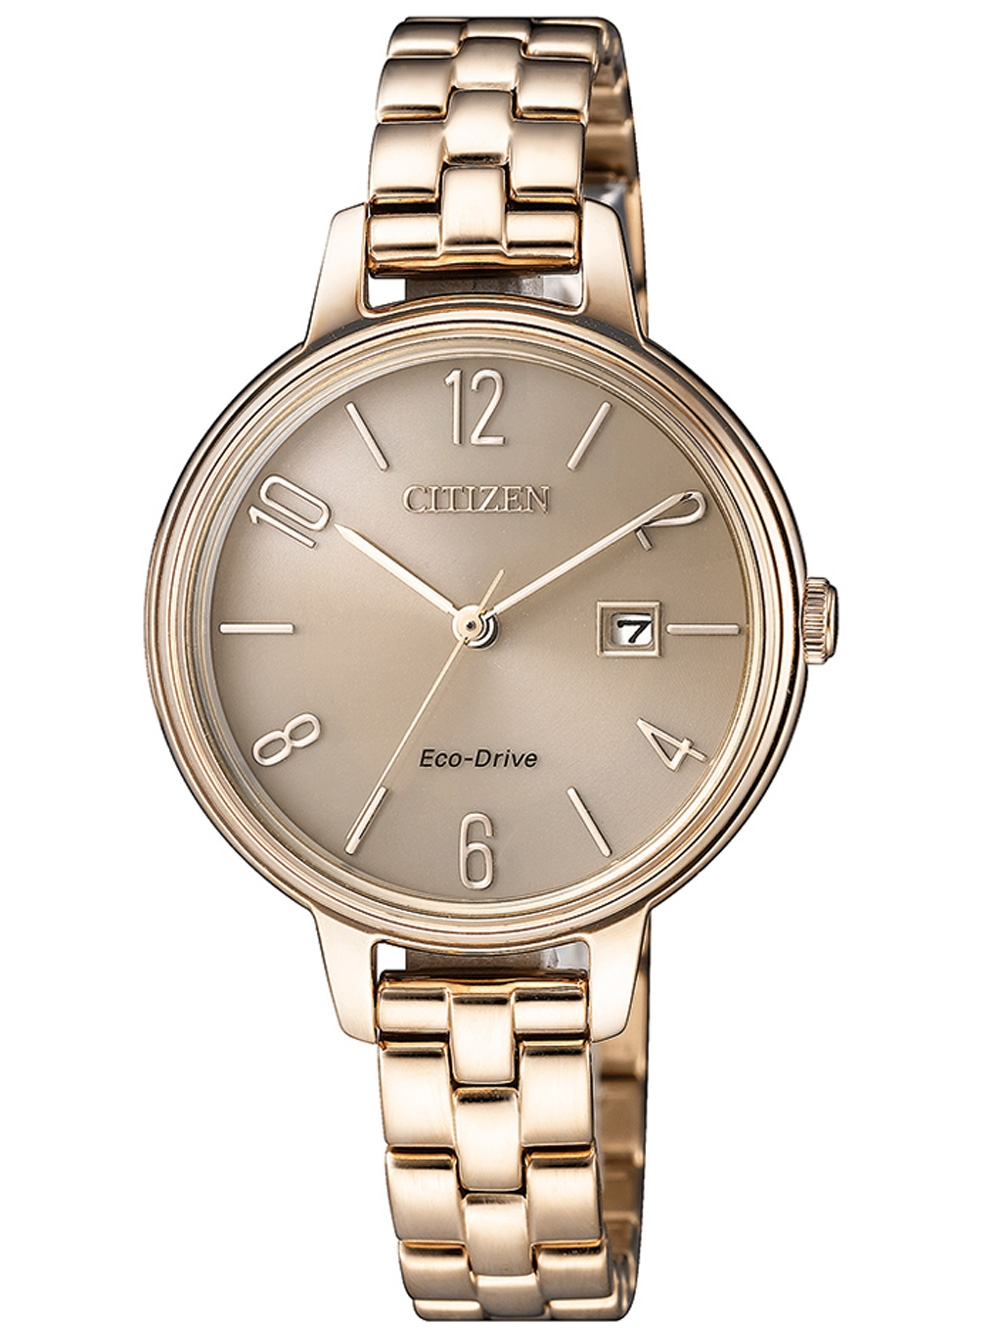 Citizen EW2443-80X Eco-Drive Damenuhr 31mm 5ATM